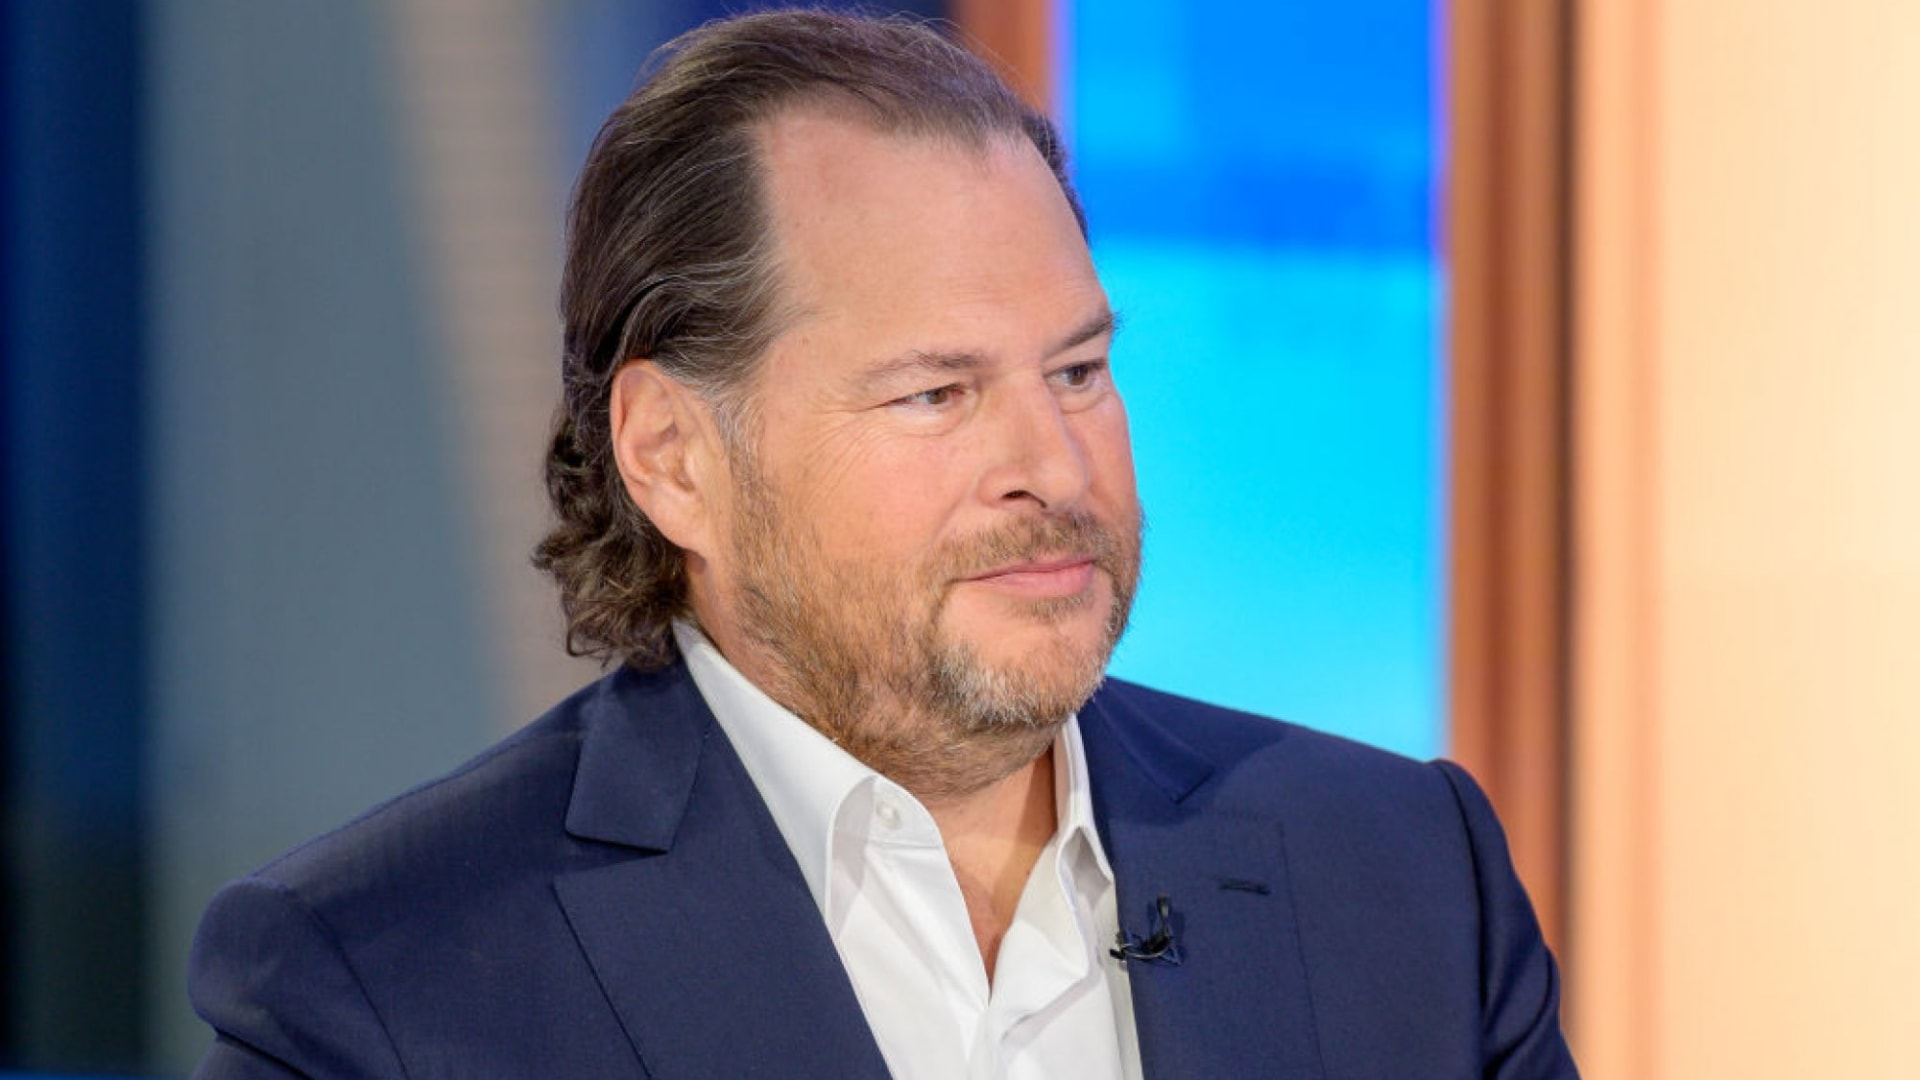 Salesforce Is Spending $27.7 Billion to Buy Slack. Marc Benioff Says It's All About These 2 Simple Factors